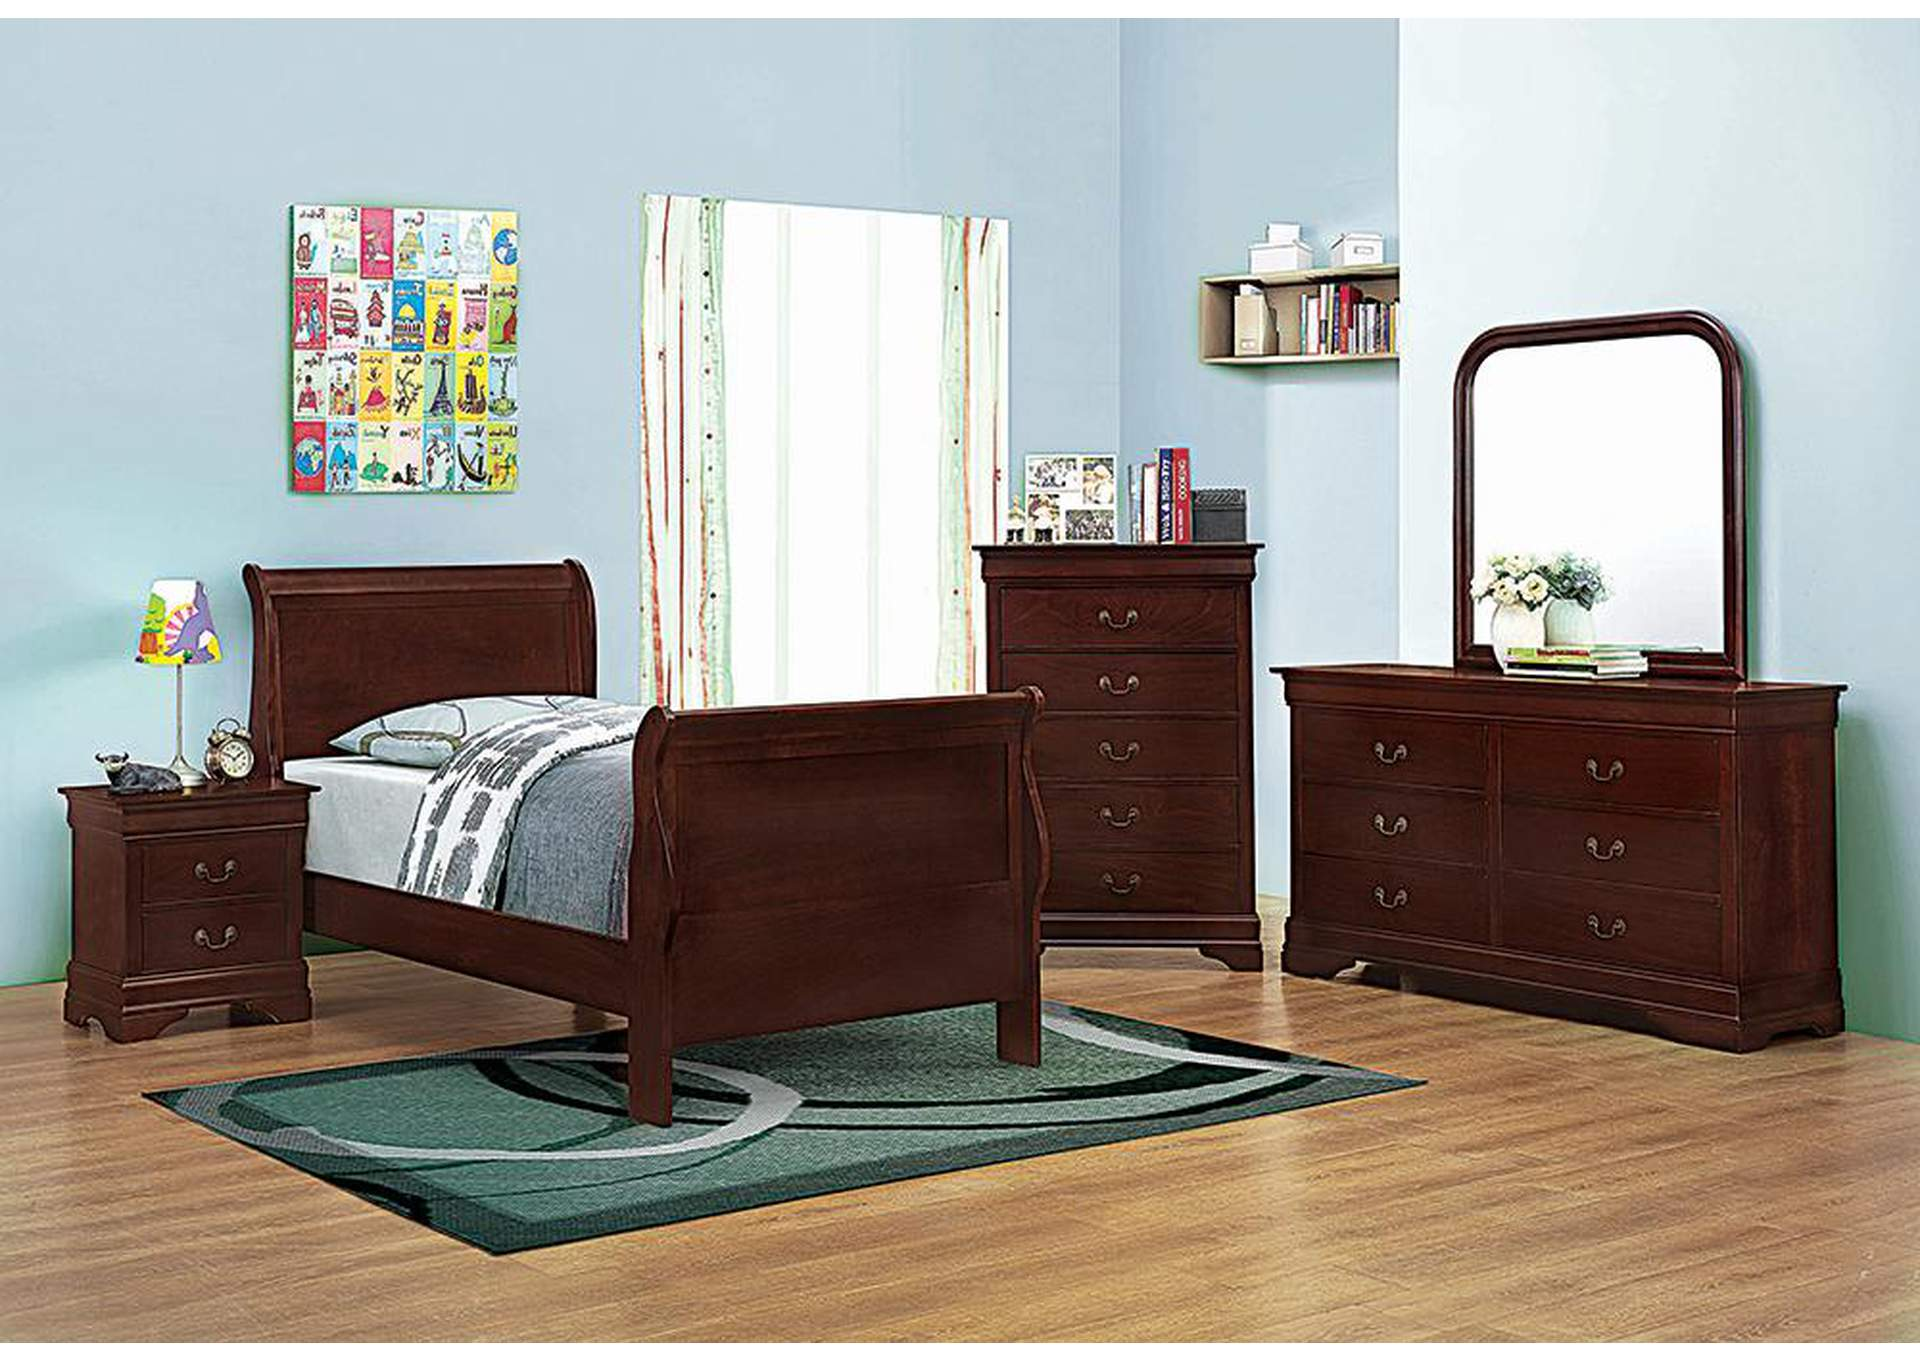 Davis Home Furniture Asheville Nc Cherry Full Bed